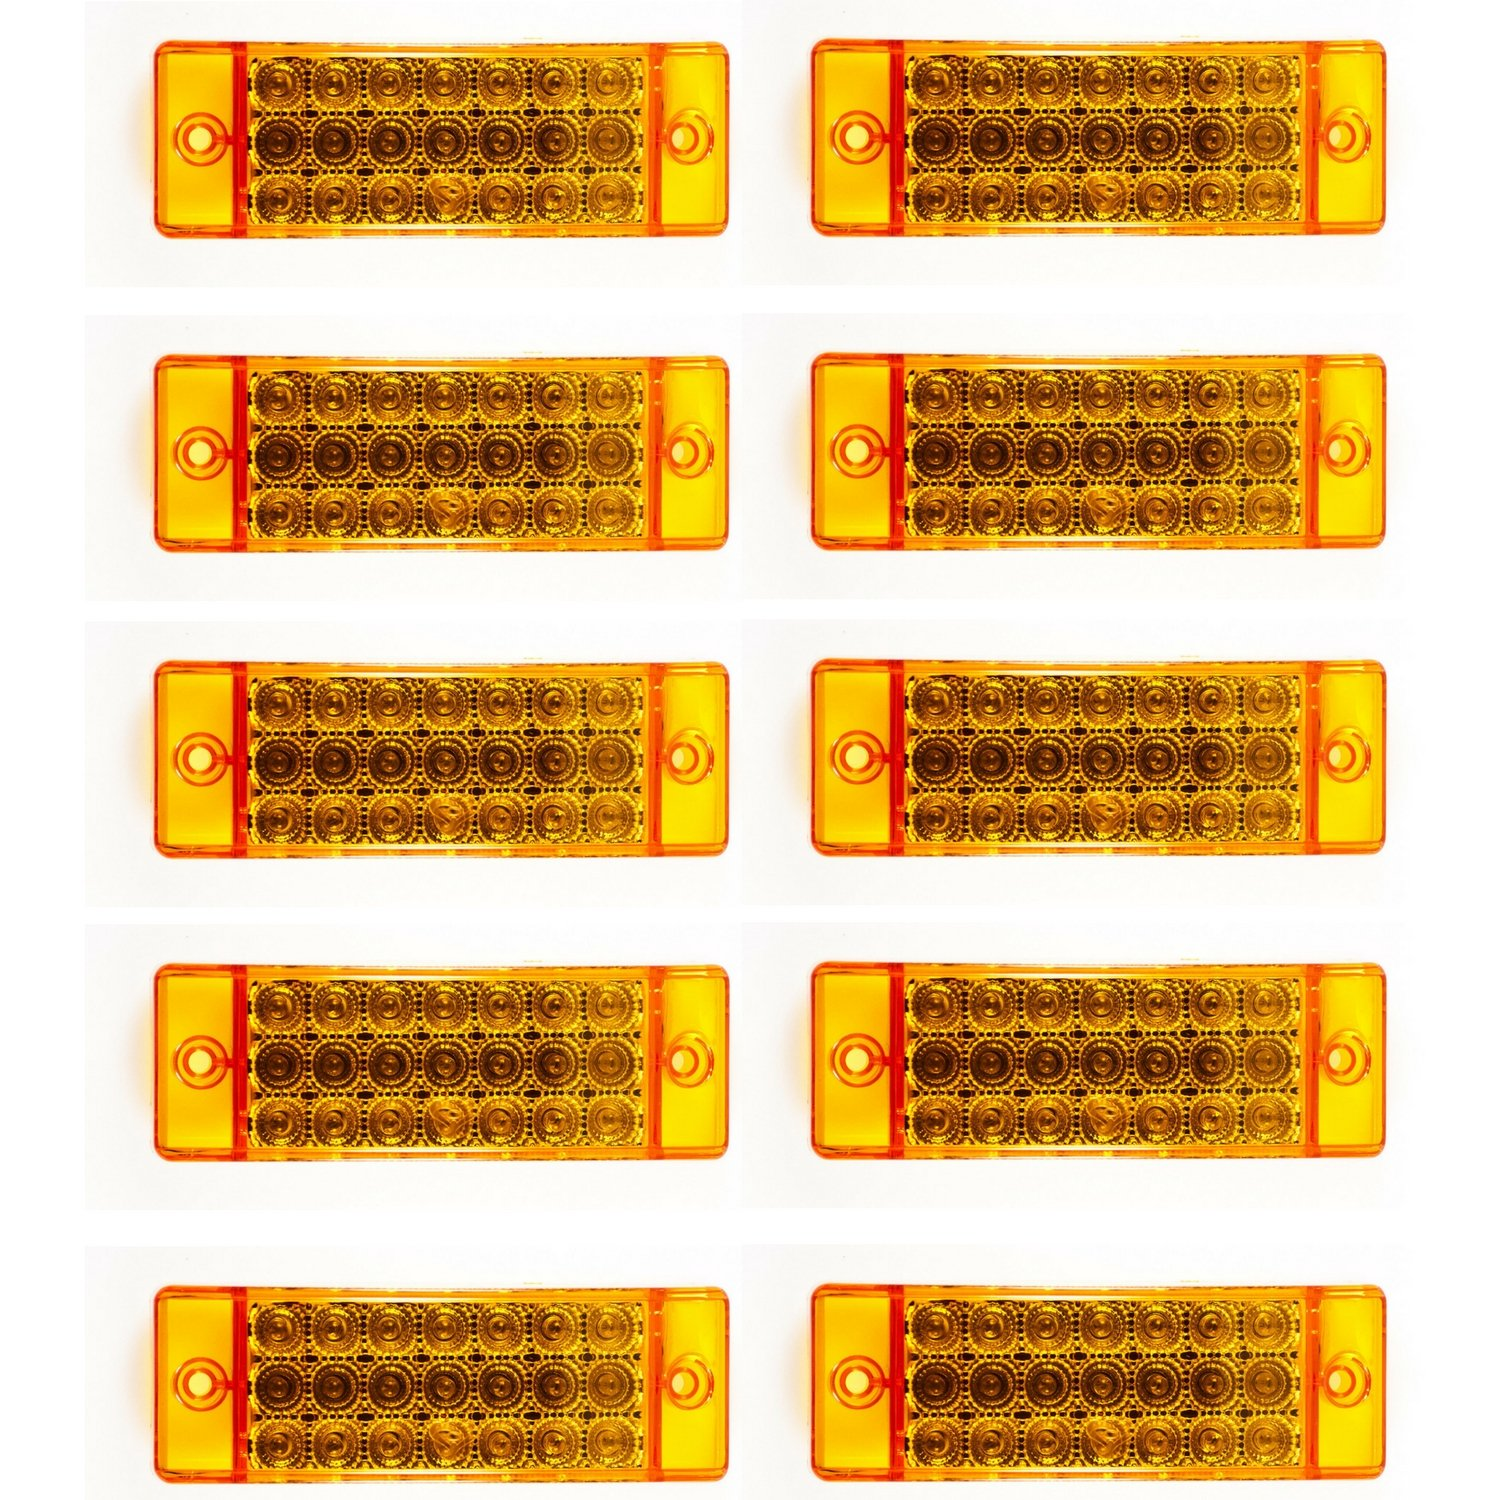 Red 21 LED Side Marker Clearance Light Rectangle 12V Truck Trailer Camper Qty 6 ALL STAR TRUCK PARTS